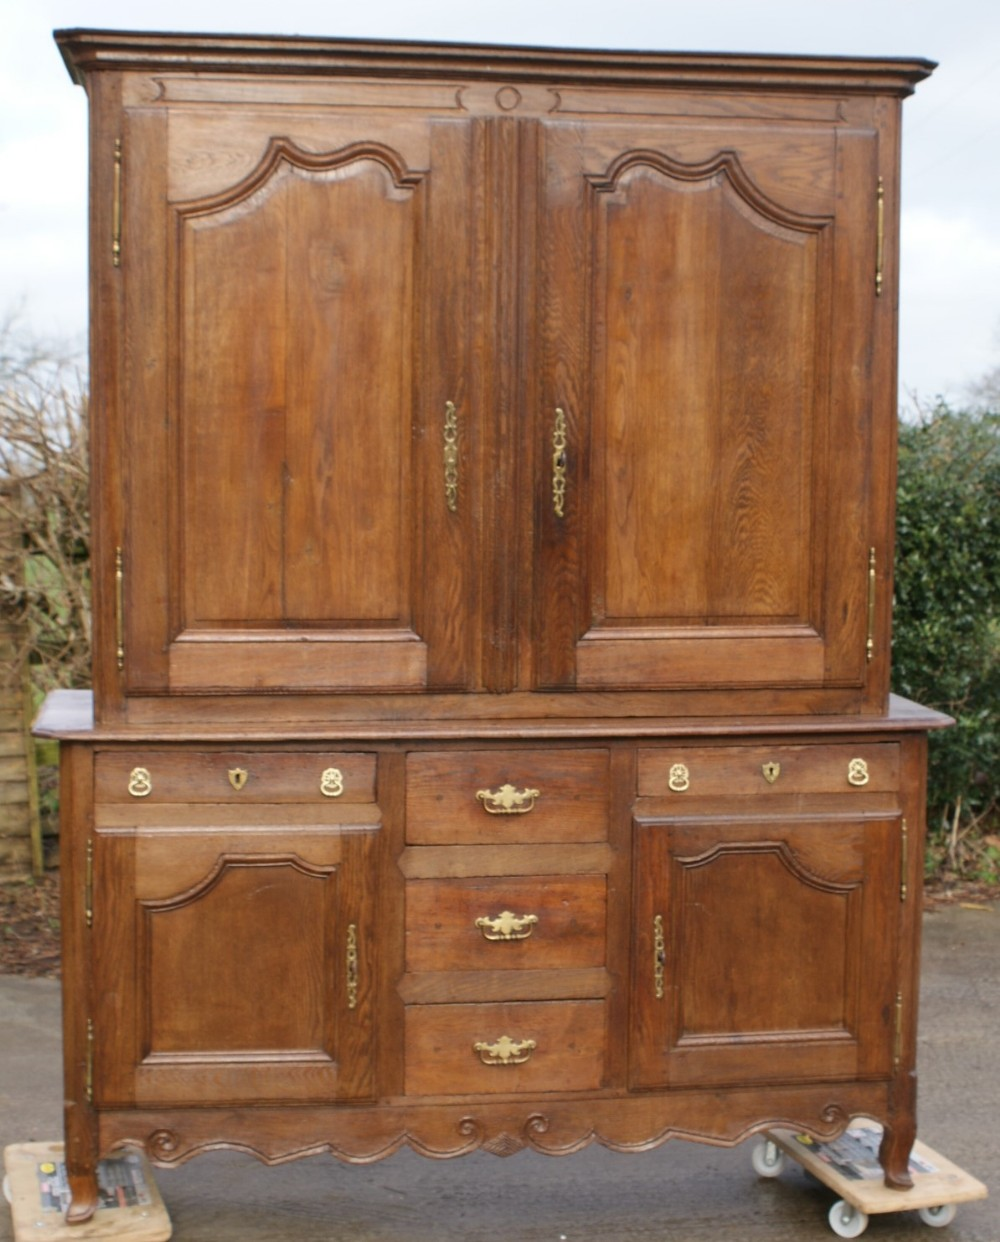 an imposing late 18th century french solid oak buffet dresser